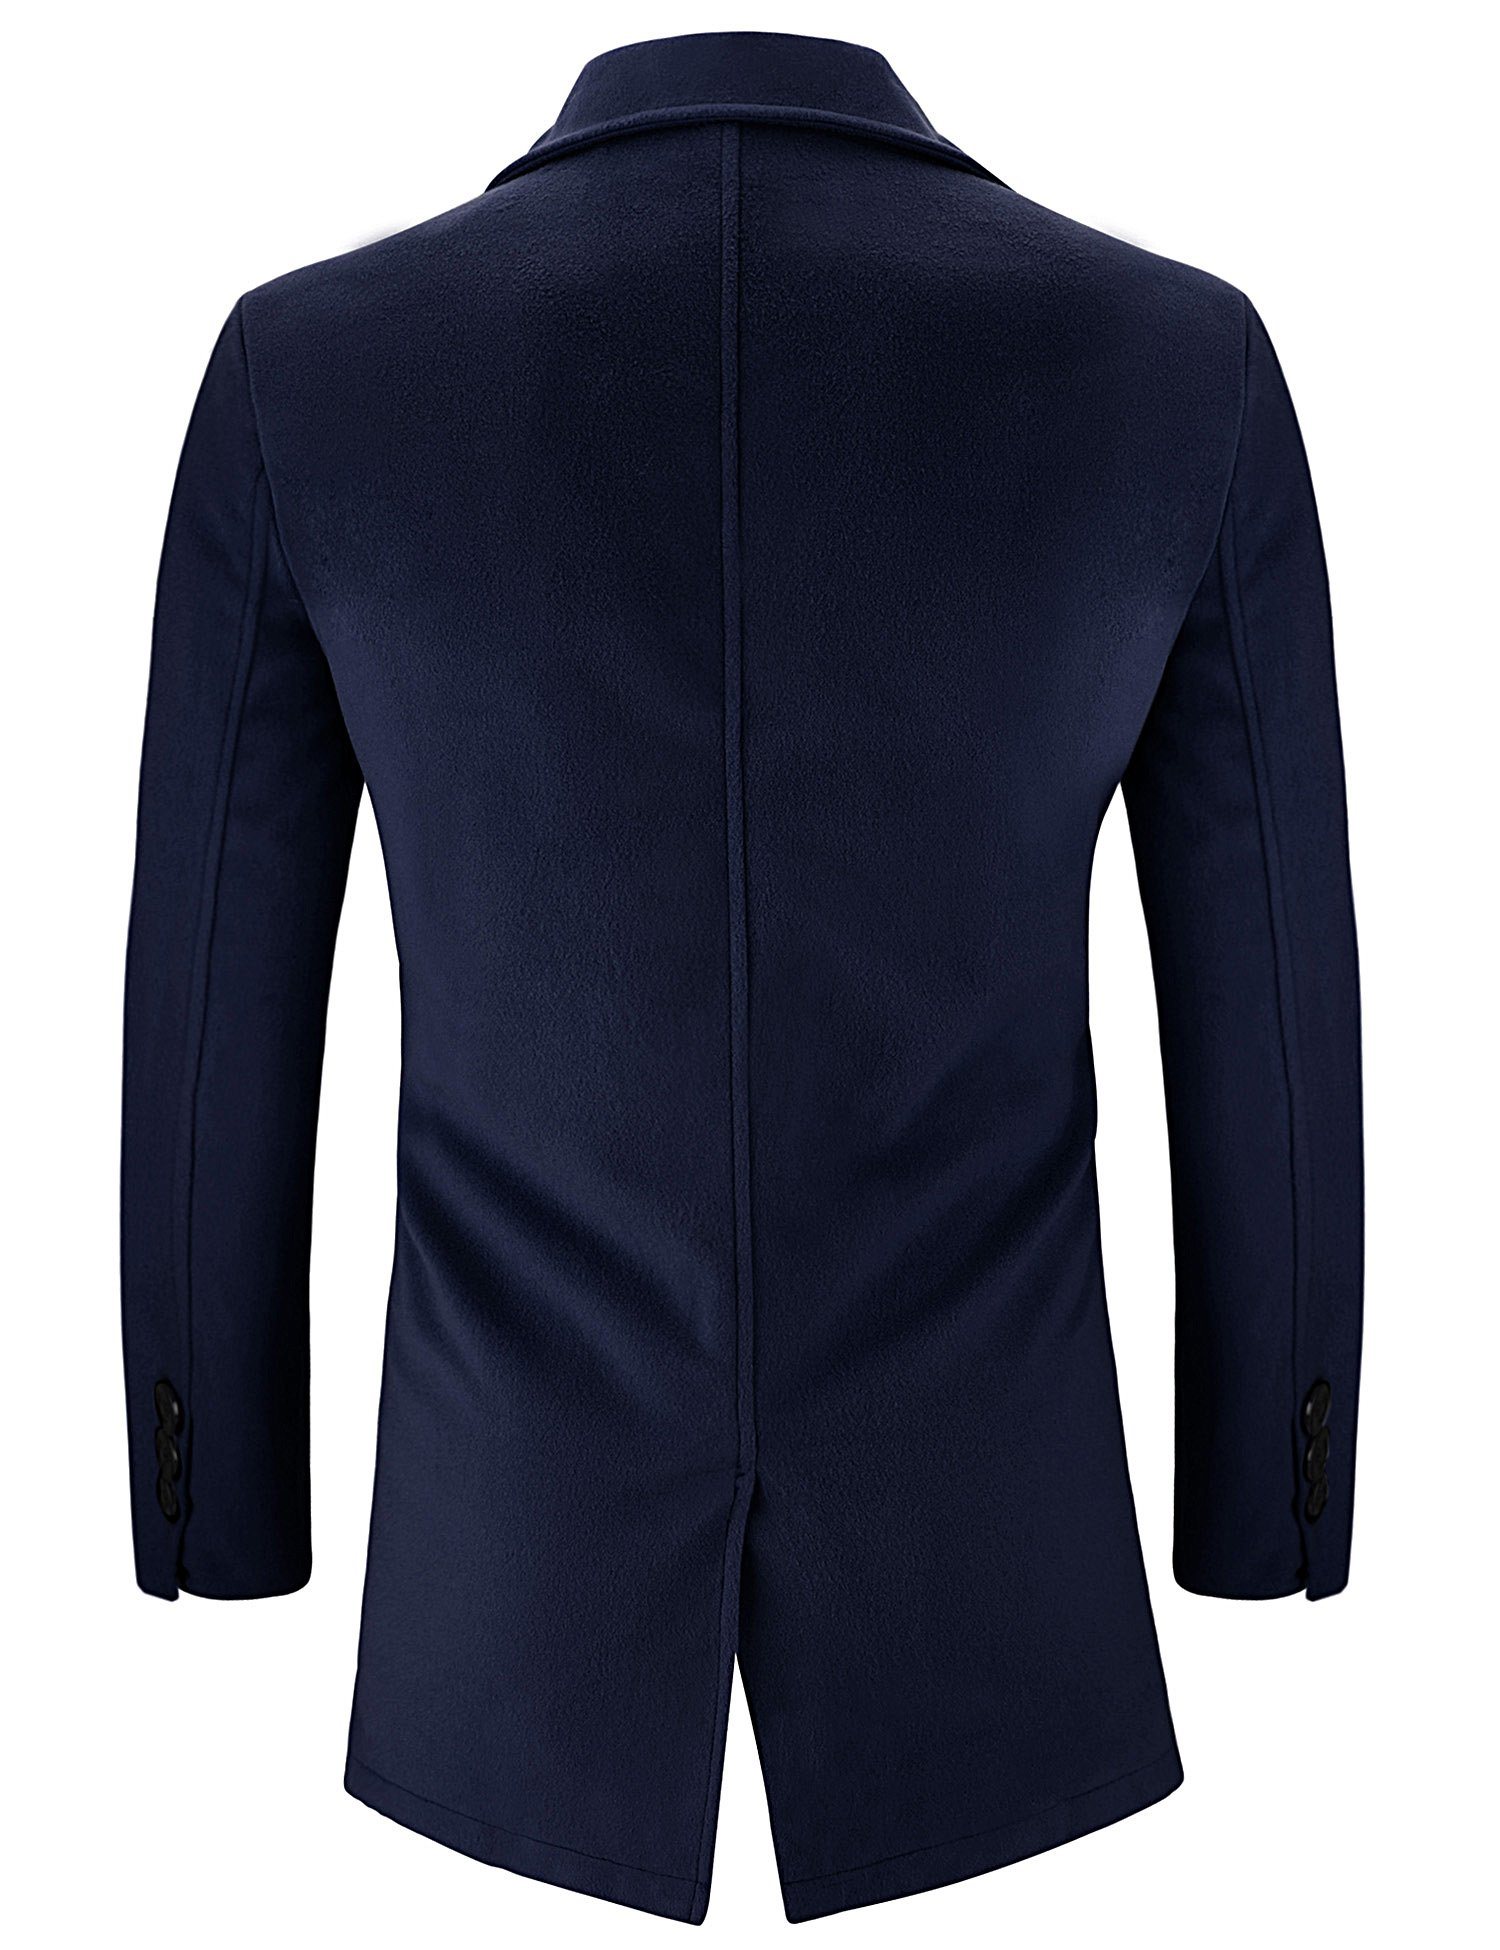 Hasuit Men's Single Breasted Notched Lapel Coat by Hasuit (Image #3)